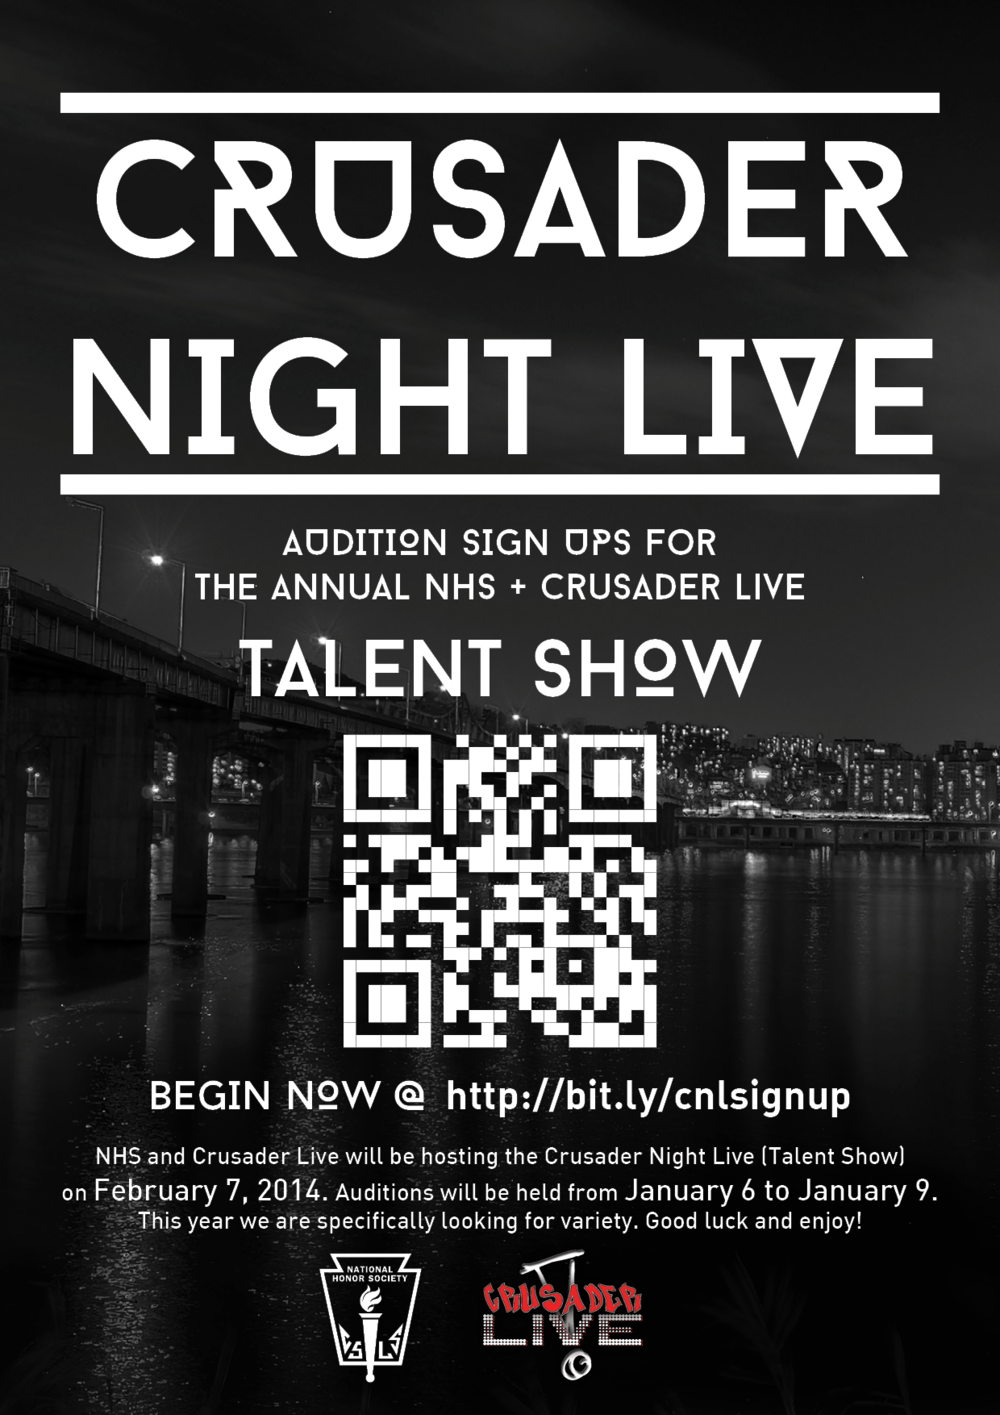 NHS Crusader Night Live First Poster